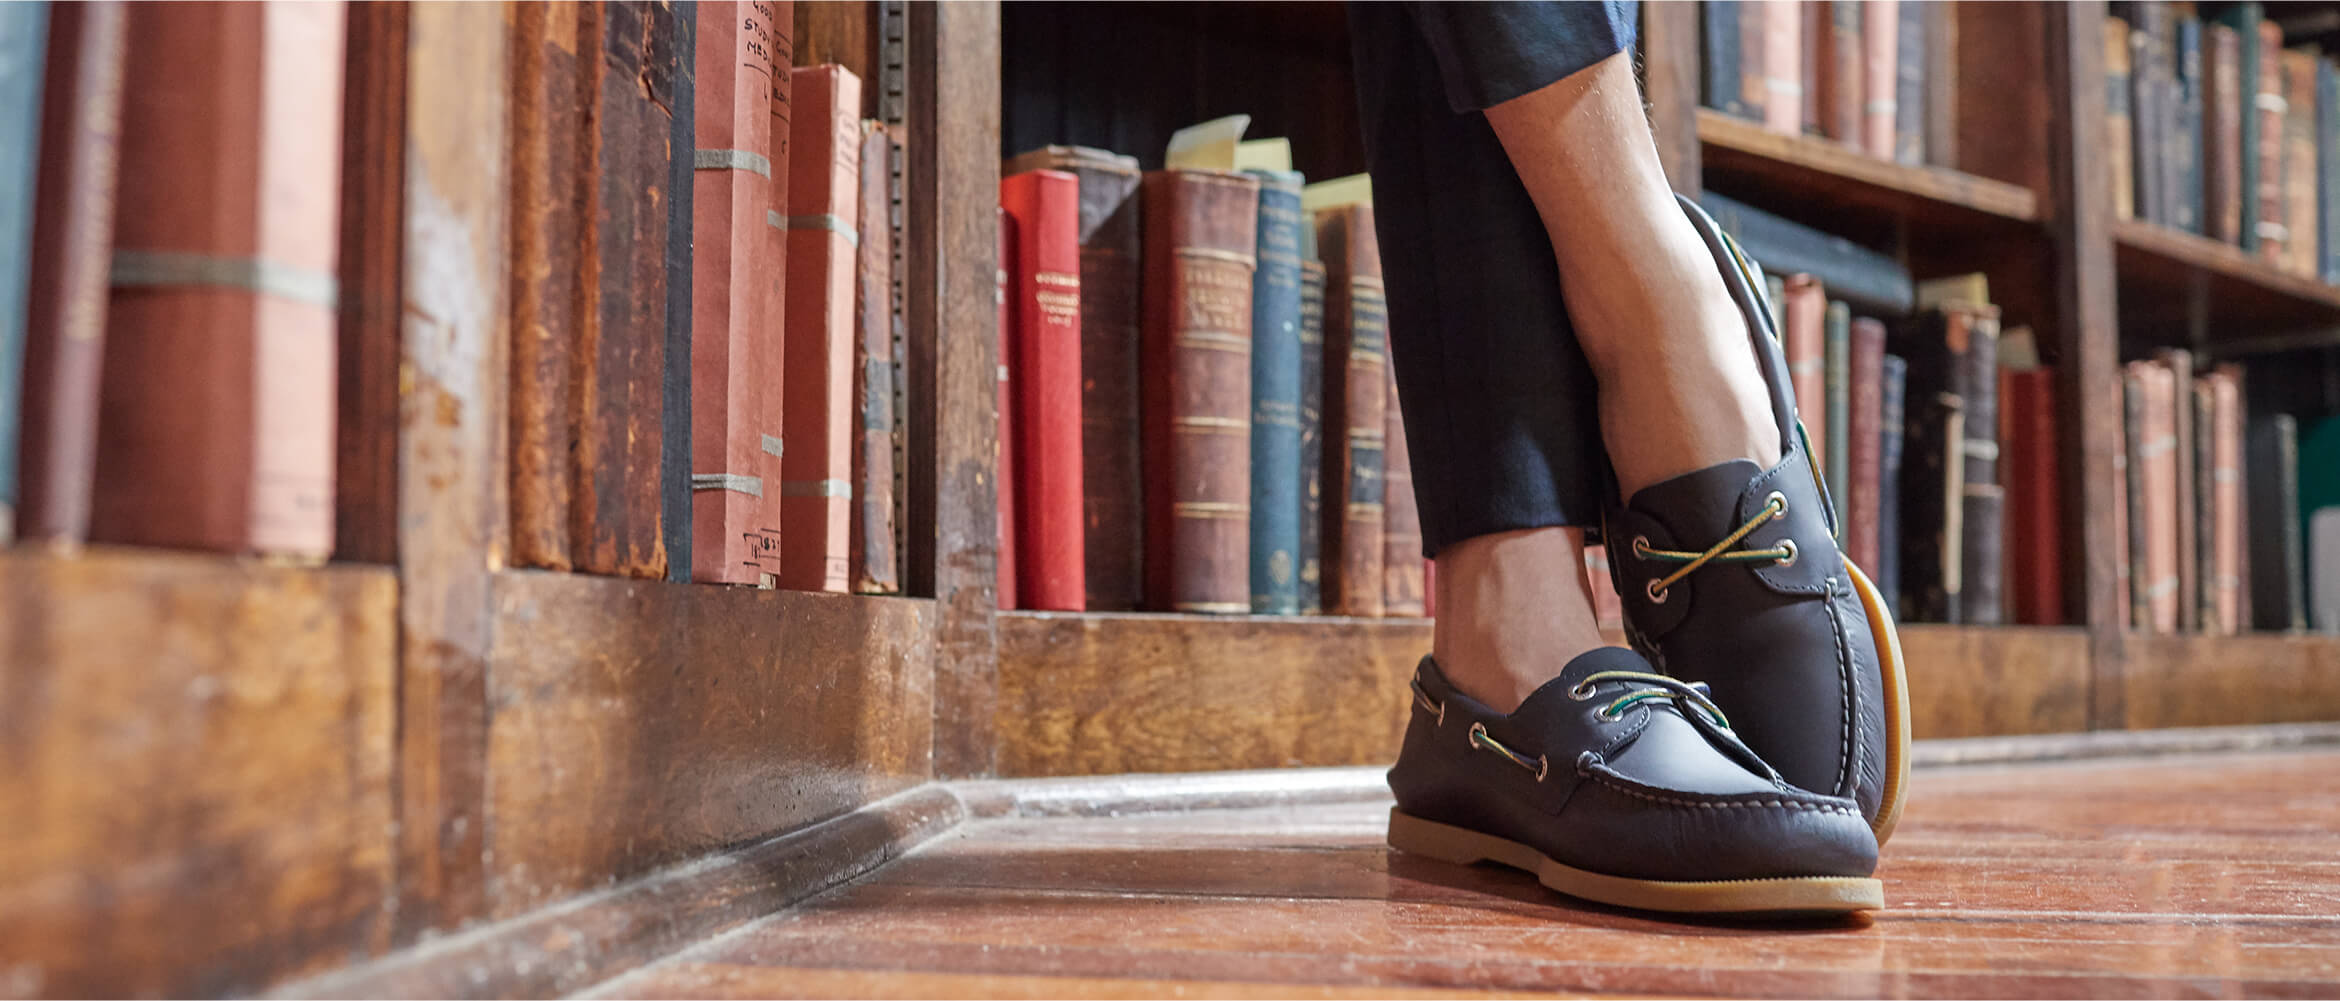 Someone leans against a bookshelf in a library. All we can see is their shoes. They're nice shoes.